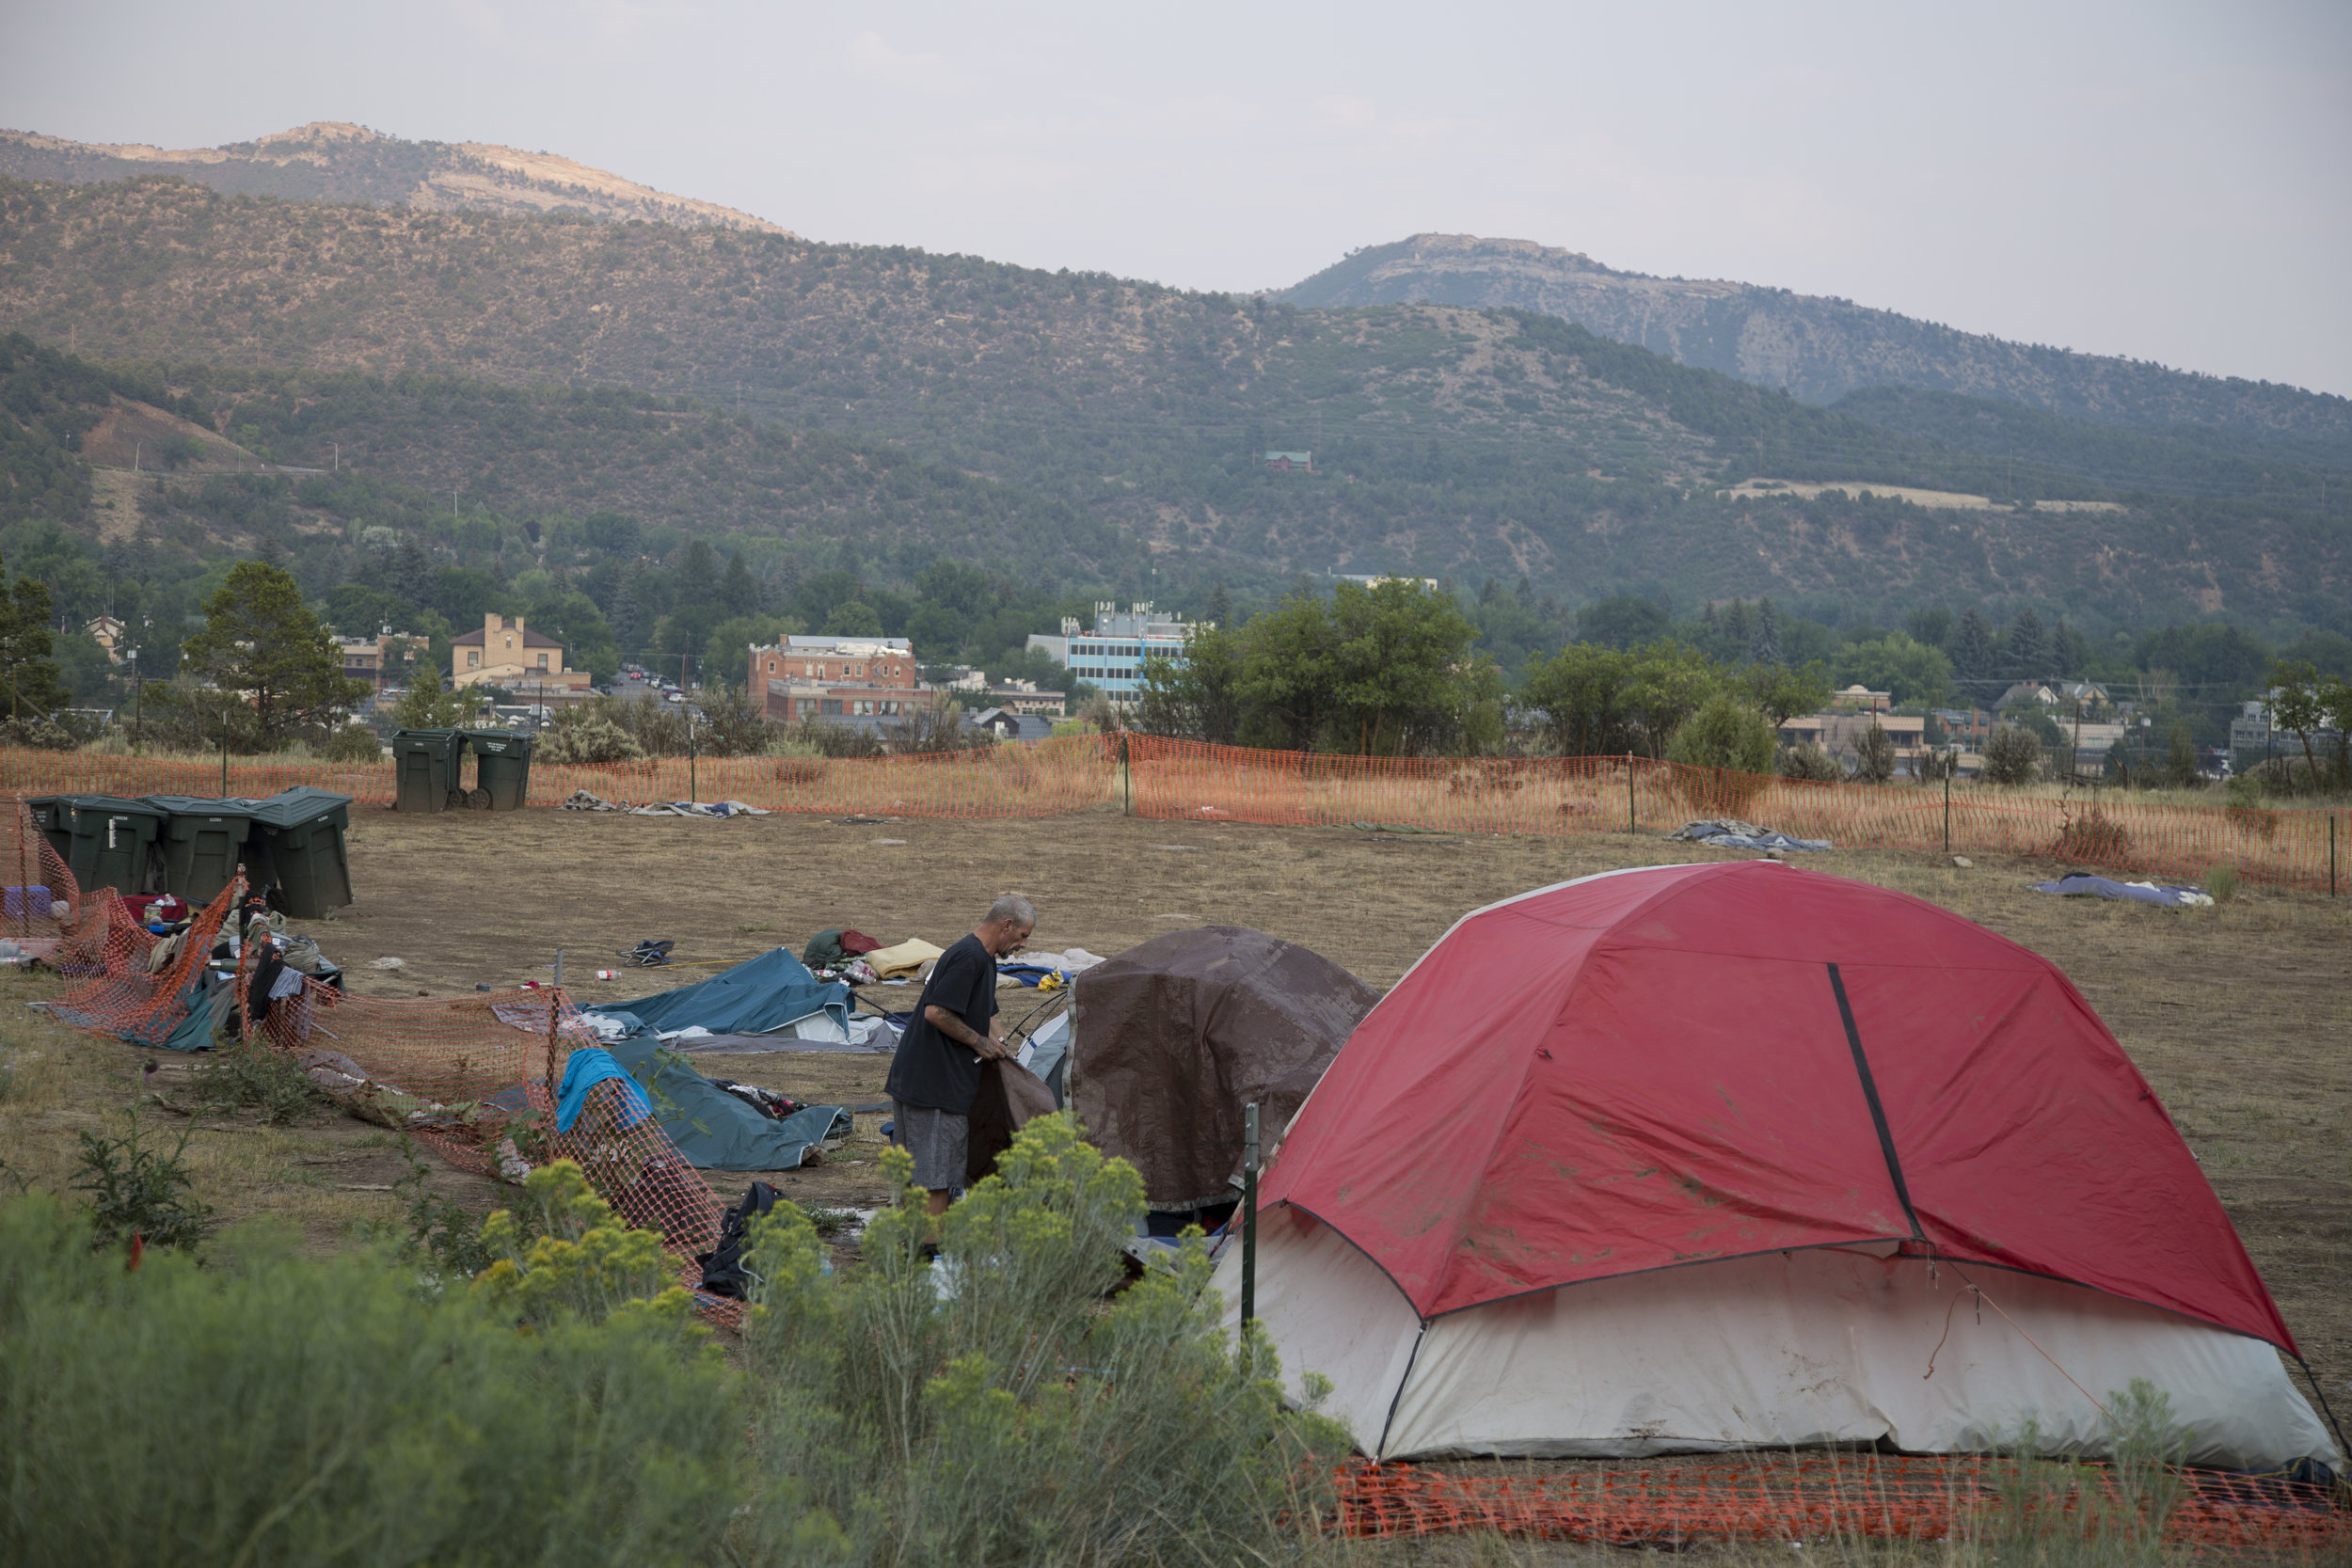 At a city-sanctioned homeless camp in Durango, people were required to pack up their tents and other belongings by 9 a.m. and not return until 6 p.m. The city in late August shut down the camp, sending homeless people scattering, some deep into the San Juan National Forest. (Scott DW Smith, Special to The Colorado Sun)